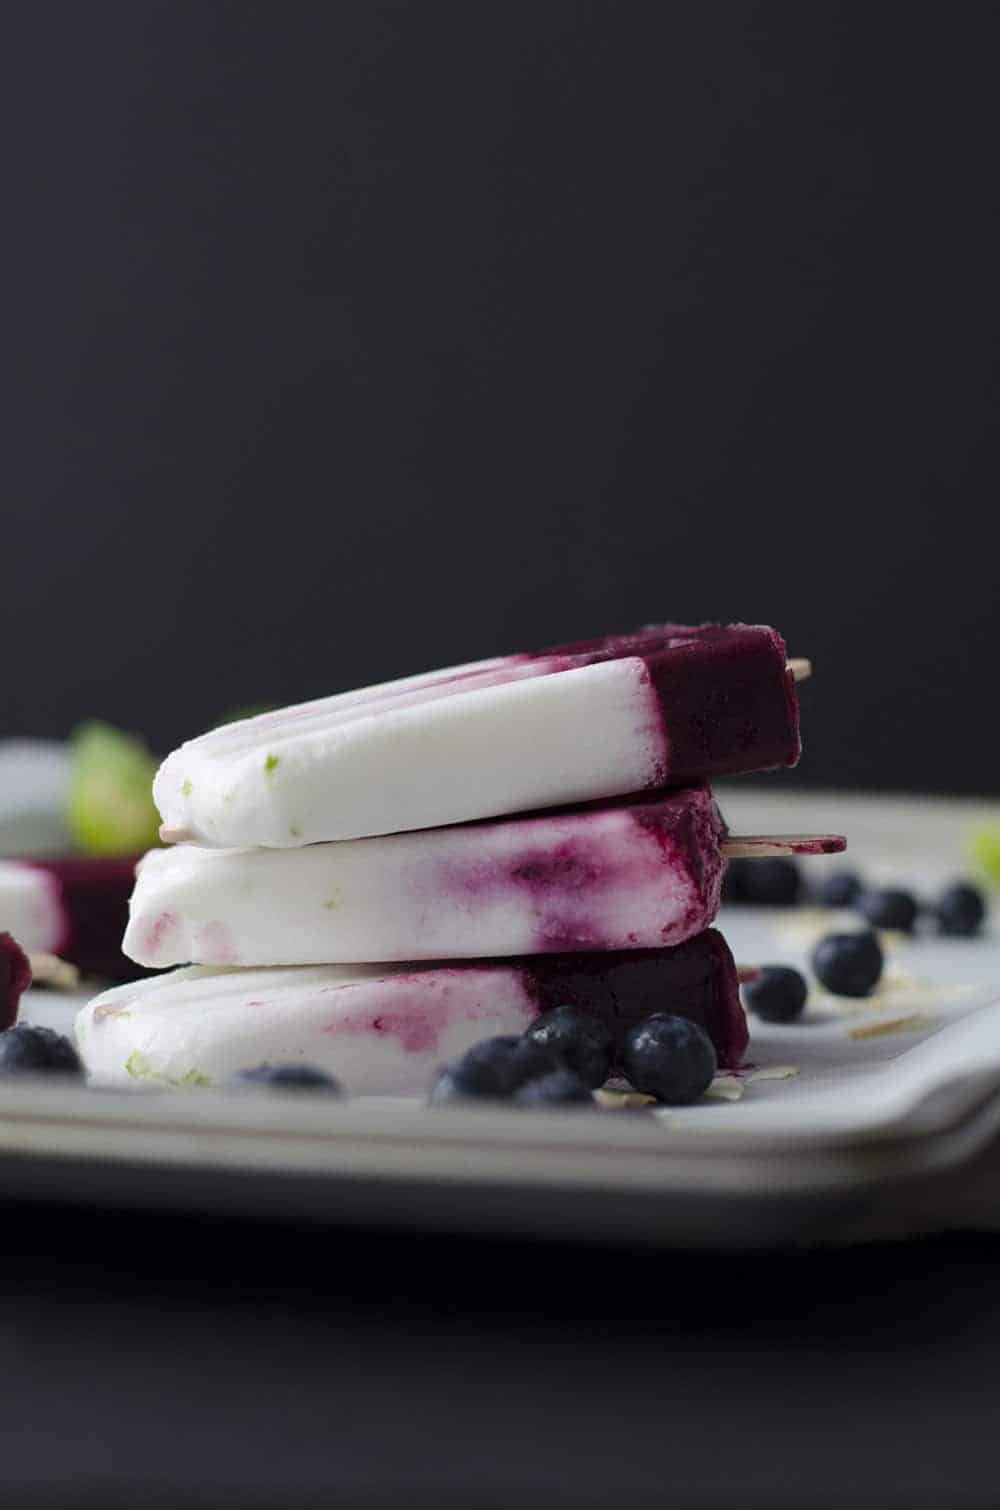 Roasted Blueberry, Coconut and Lime Popsicles! Roasting intensifies the sweetness of the berries, with very little added sugar. Layers of roasted blueberries, coconut and lime. Vegan & Gluten-Free | www.delishknowledge.com